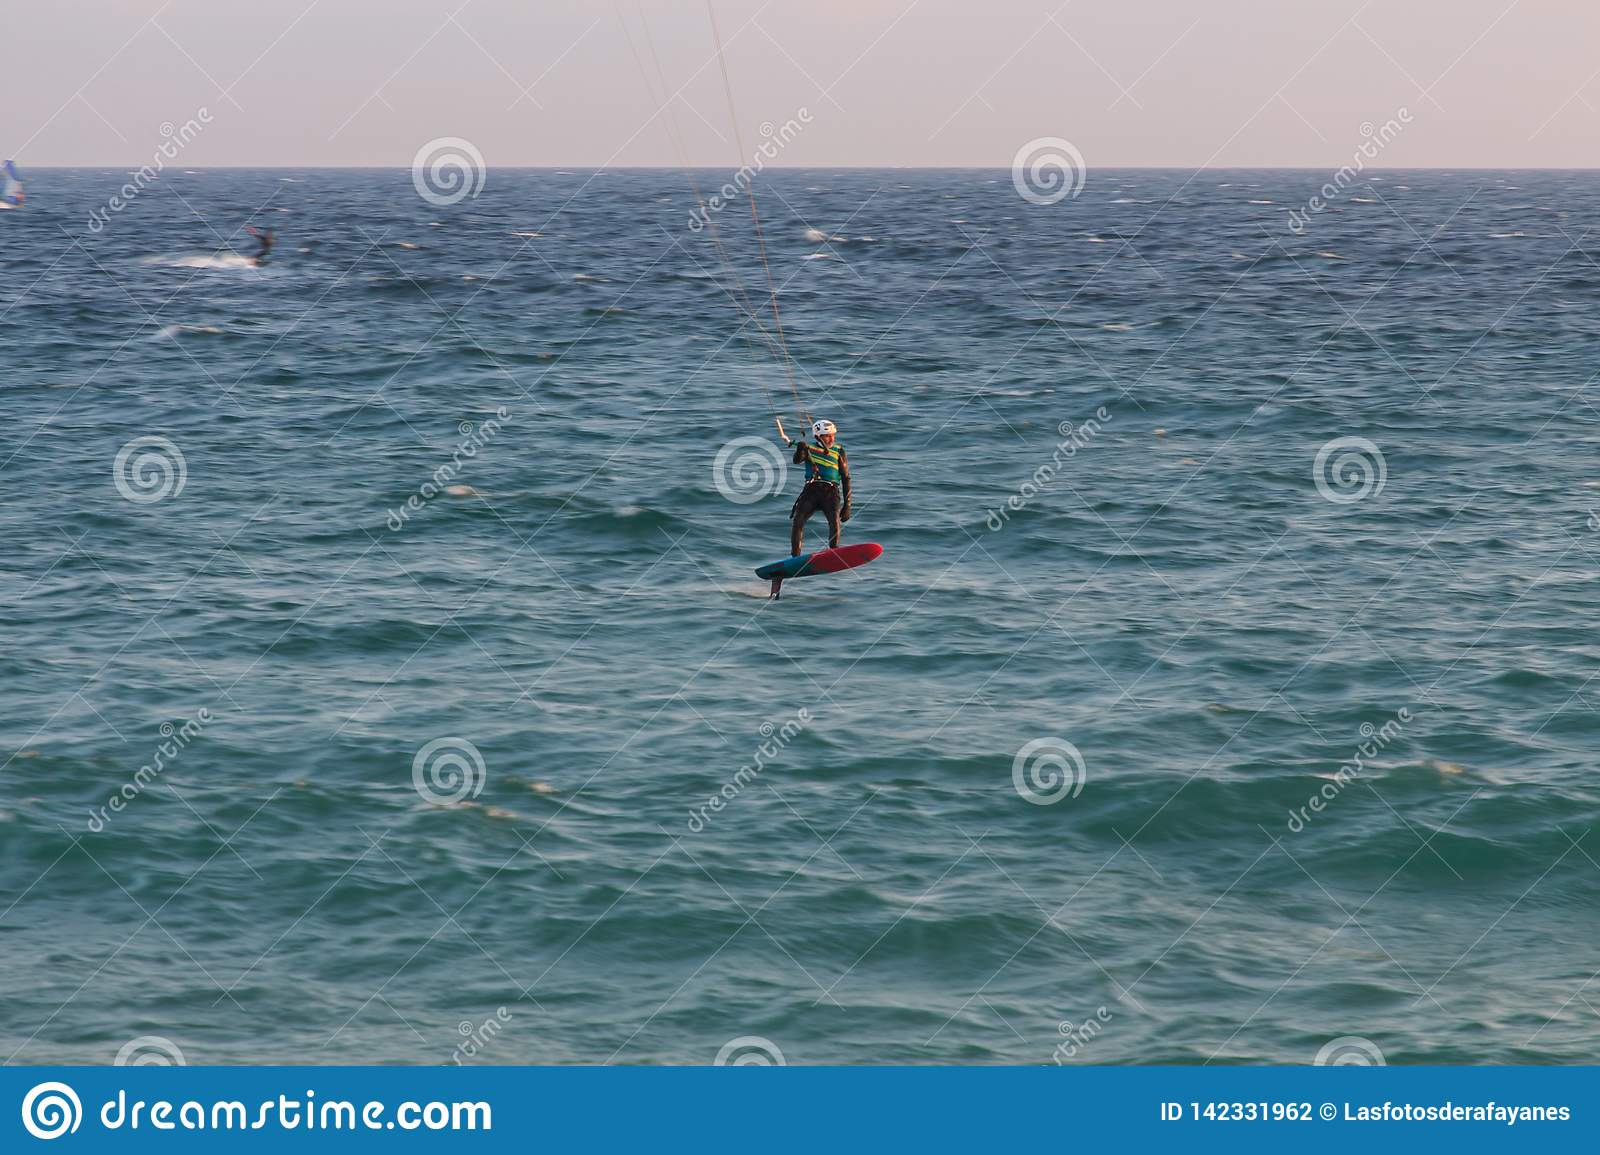 Cabrera de Mar,Barcelona/Spain; 02 08 2019: A good afternoon to practice Windsurfing and Kitesurfing Flysurf at Cabrera beach at